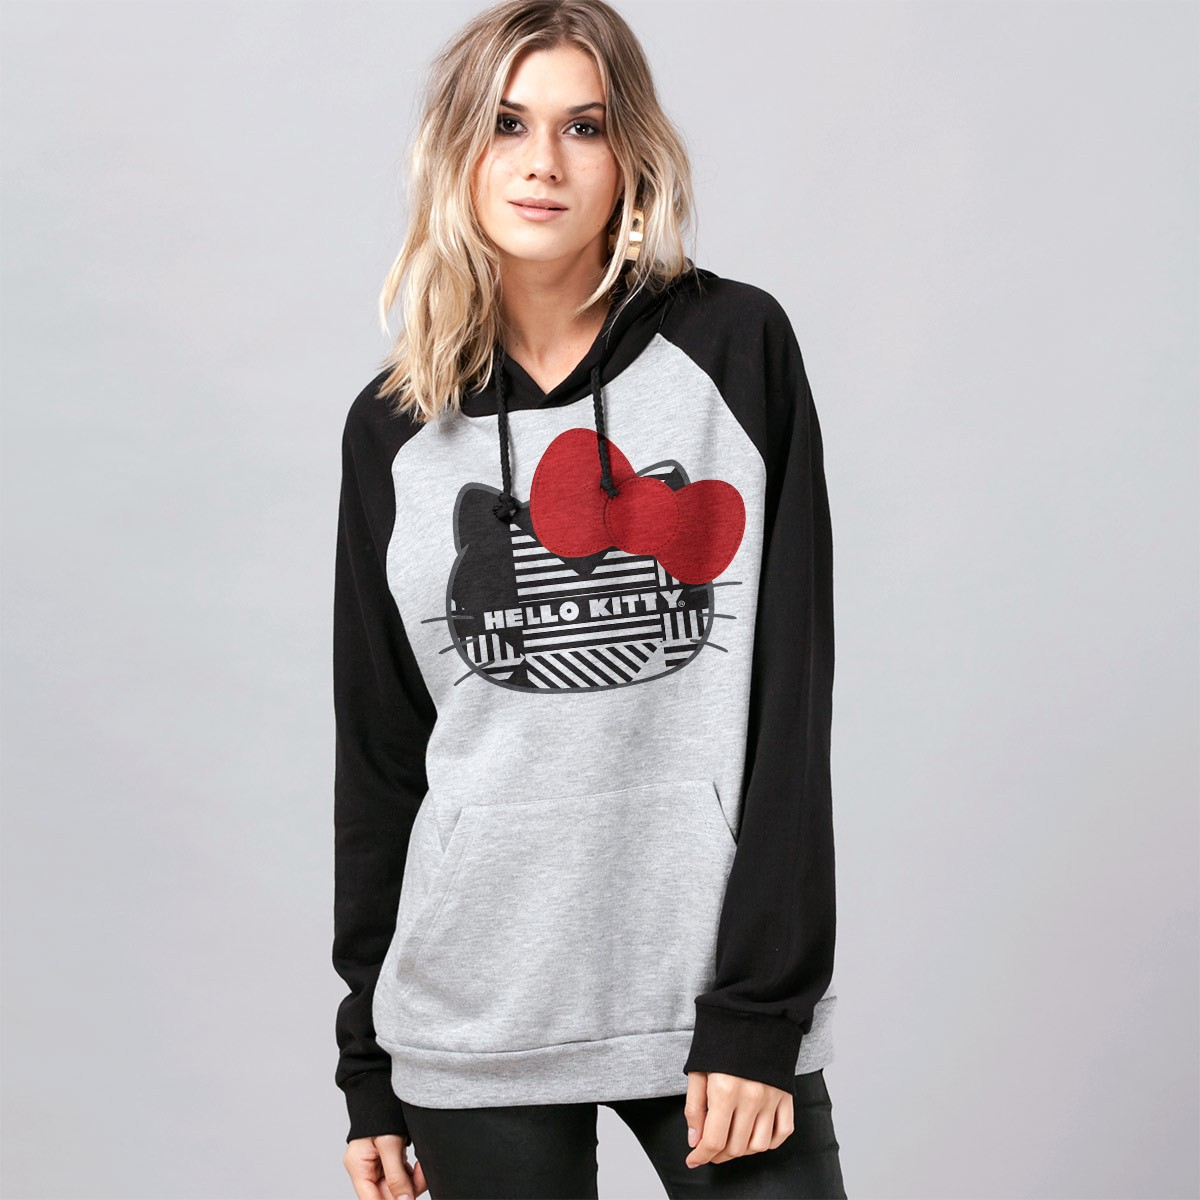 Moletom Raglan Hello Kitty Abstract